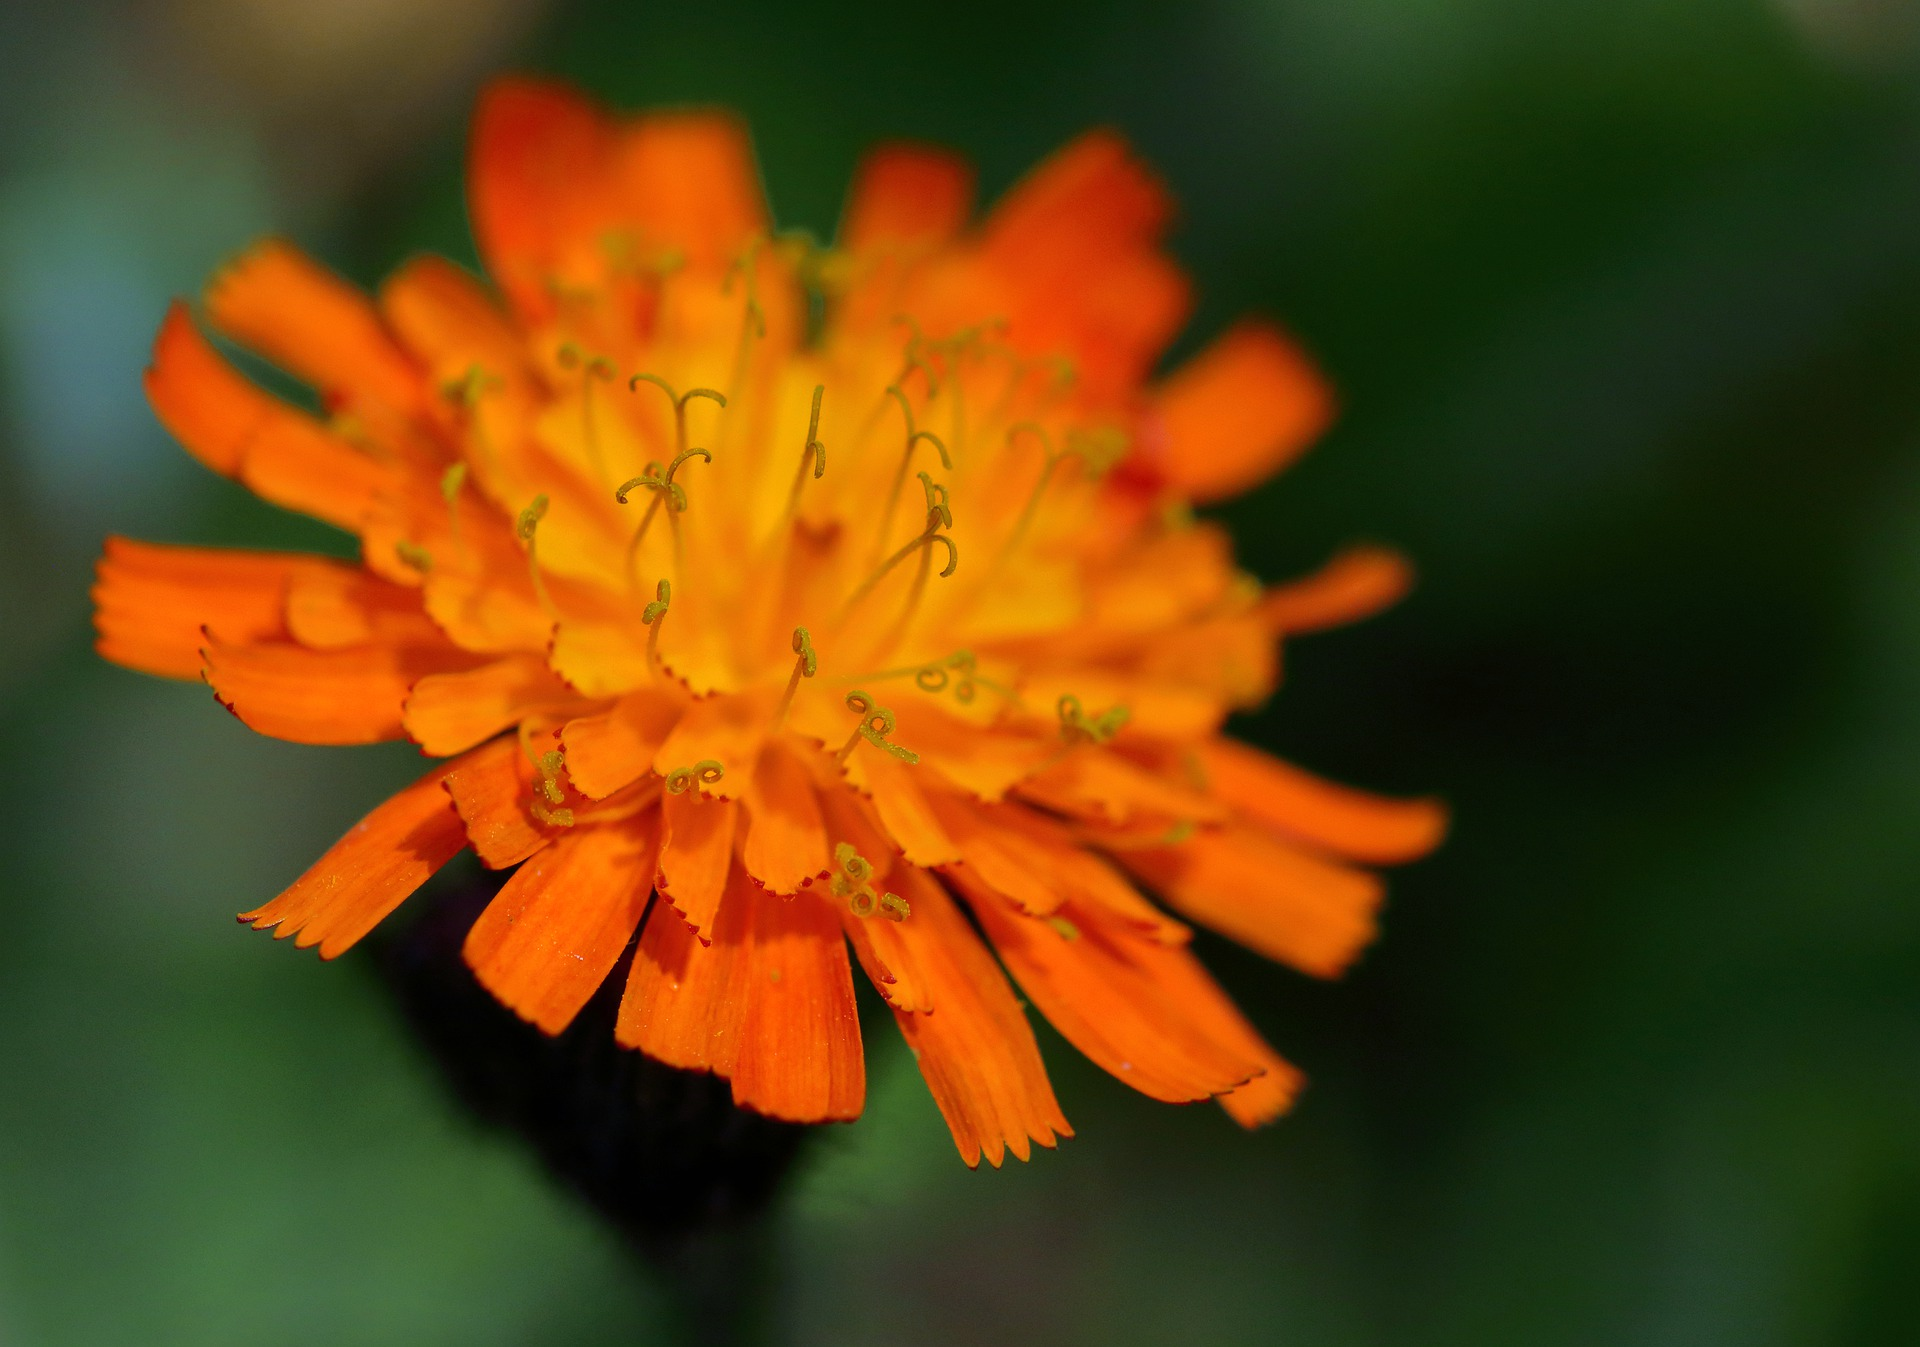 close up of an orange flower